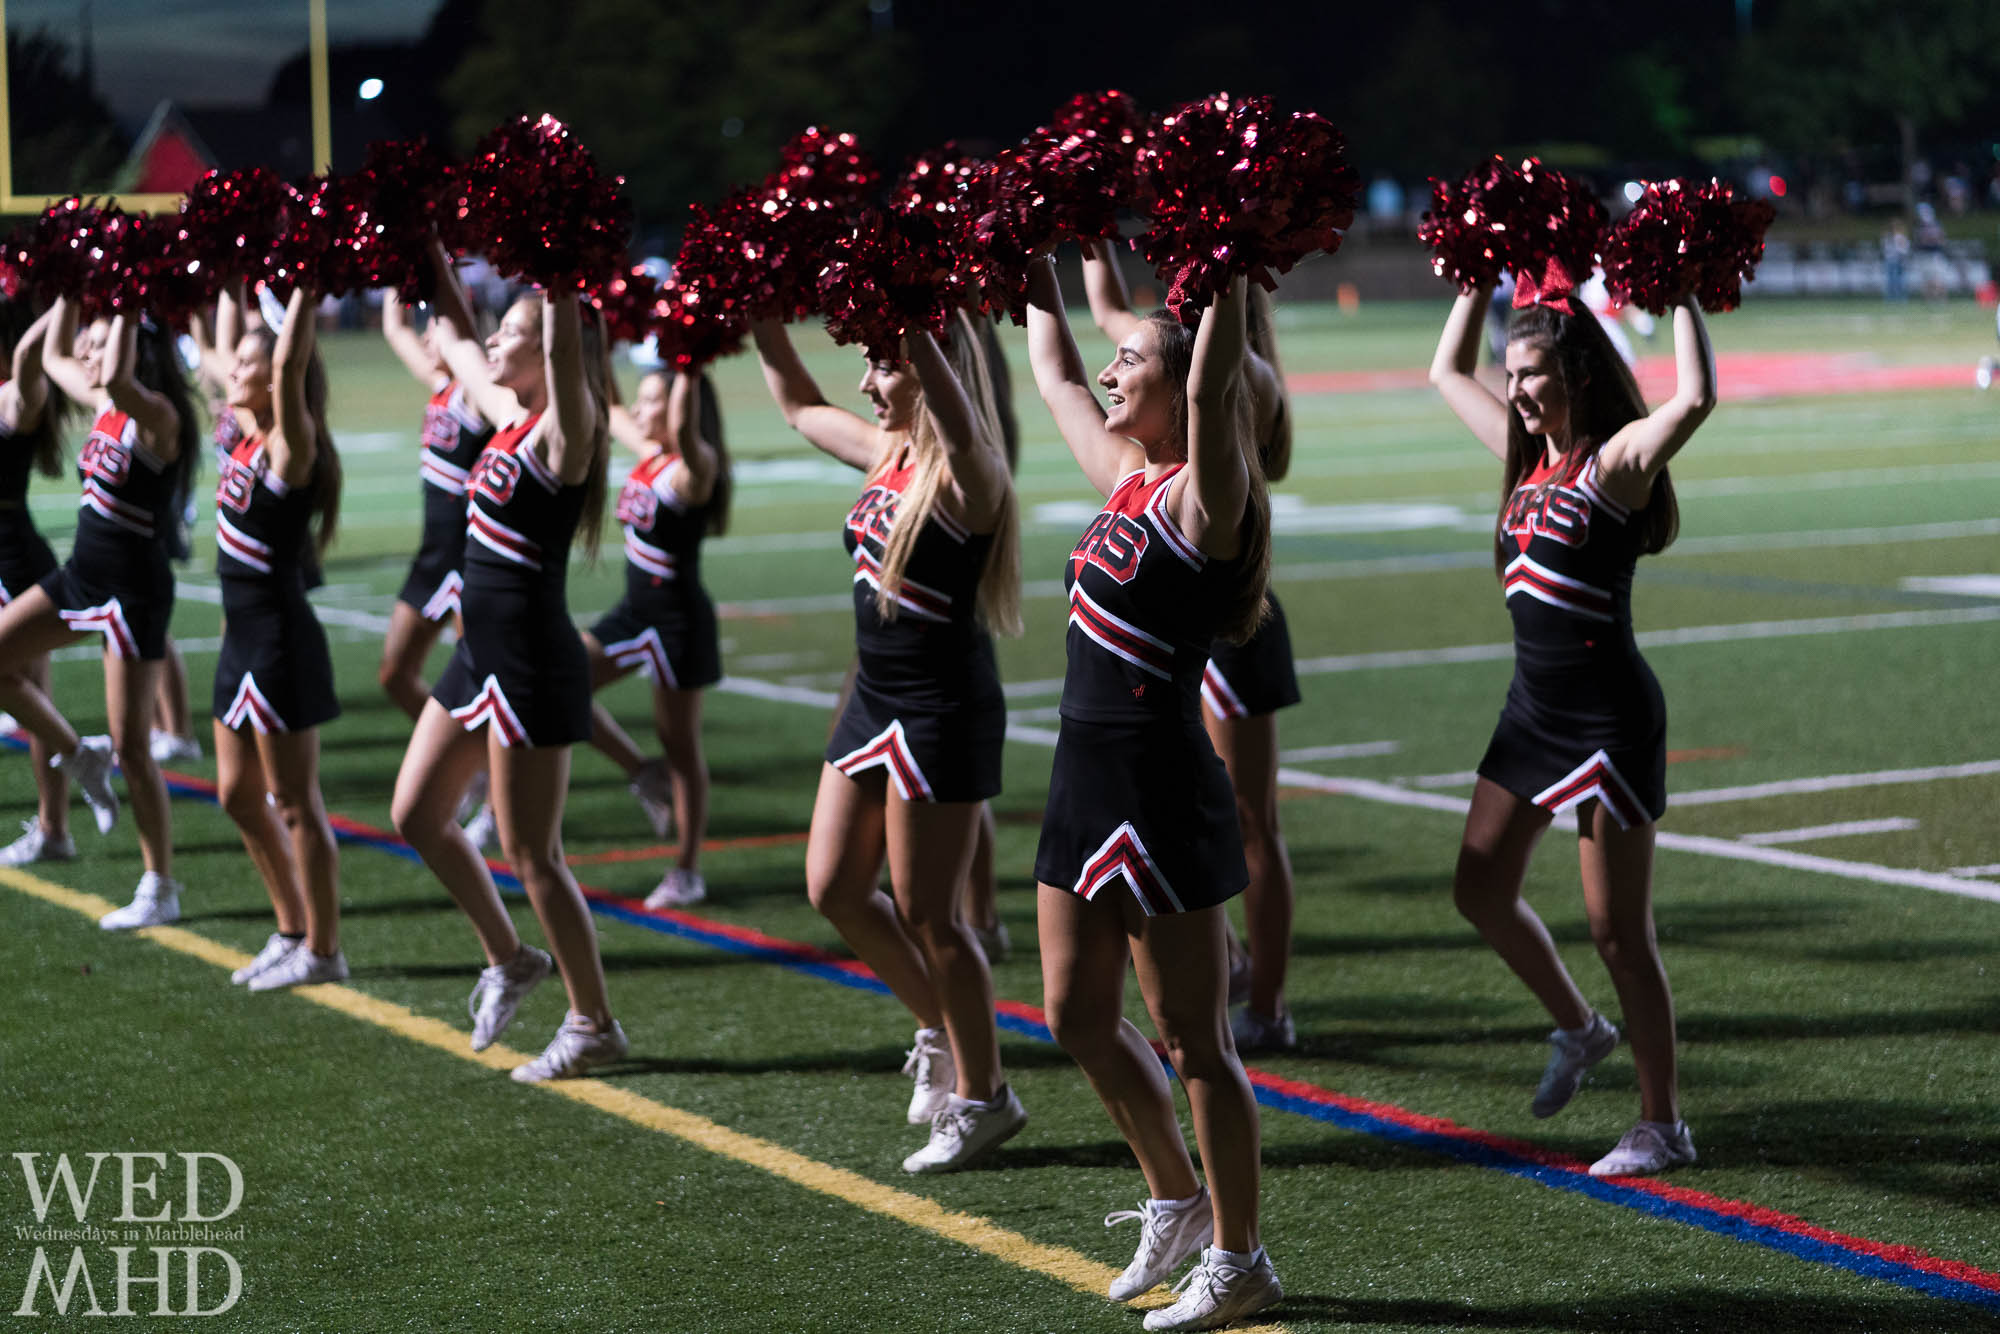 Cheerleaders captured under the Friday night lights in a time before concerns about the novel coronavirus